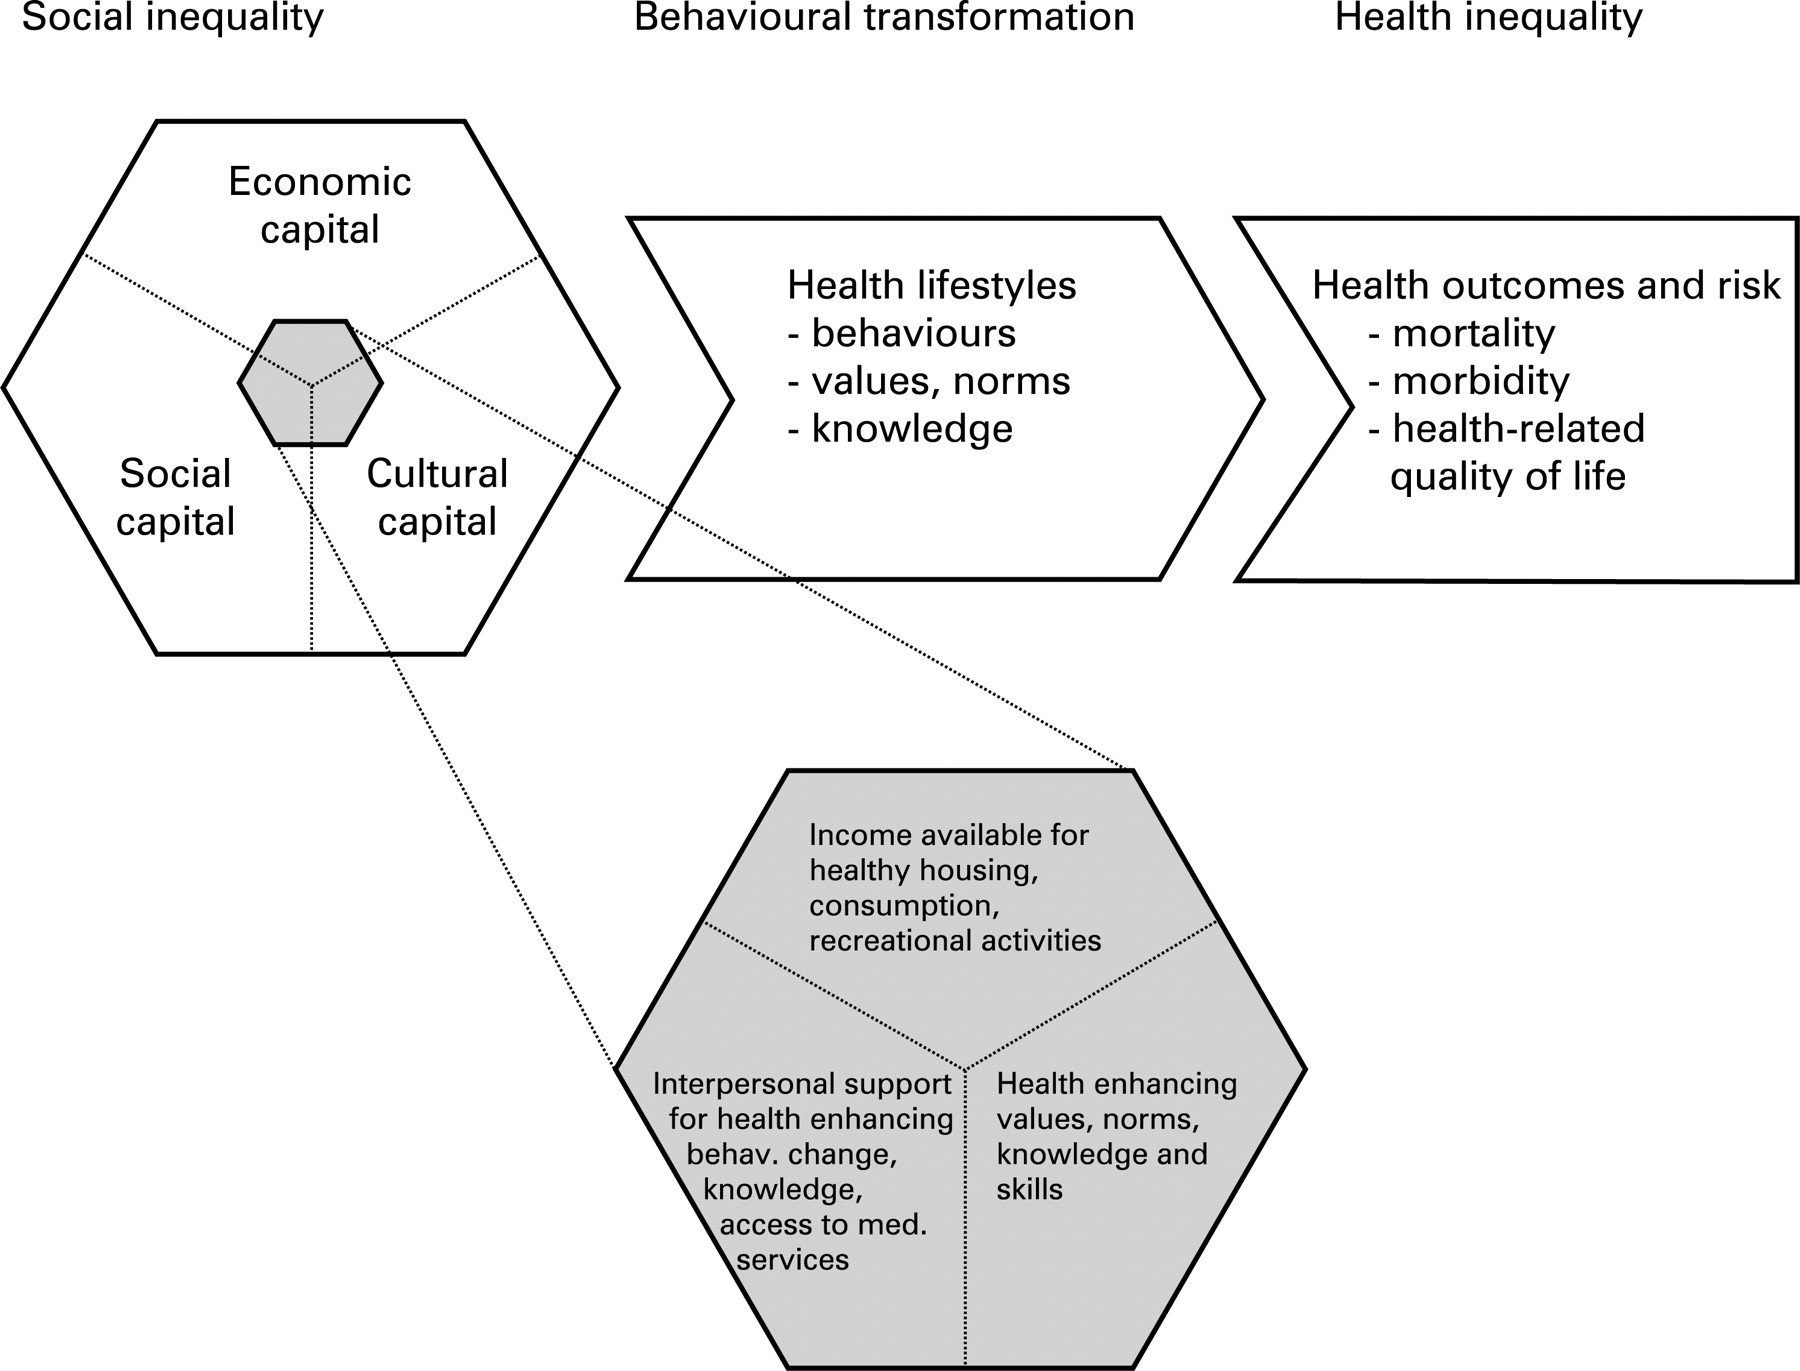 an evalution of different explanations of social inequality Explaining gender differences• there are 3 different groups of explanations: – biological – social roles – structural factors 10 biological explanations• biological explanations focus on genetic and physiological differences – male and female bodies are different• but mortality and morbidity gaps change over time and between.